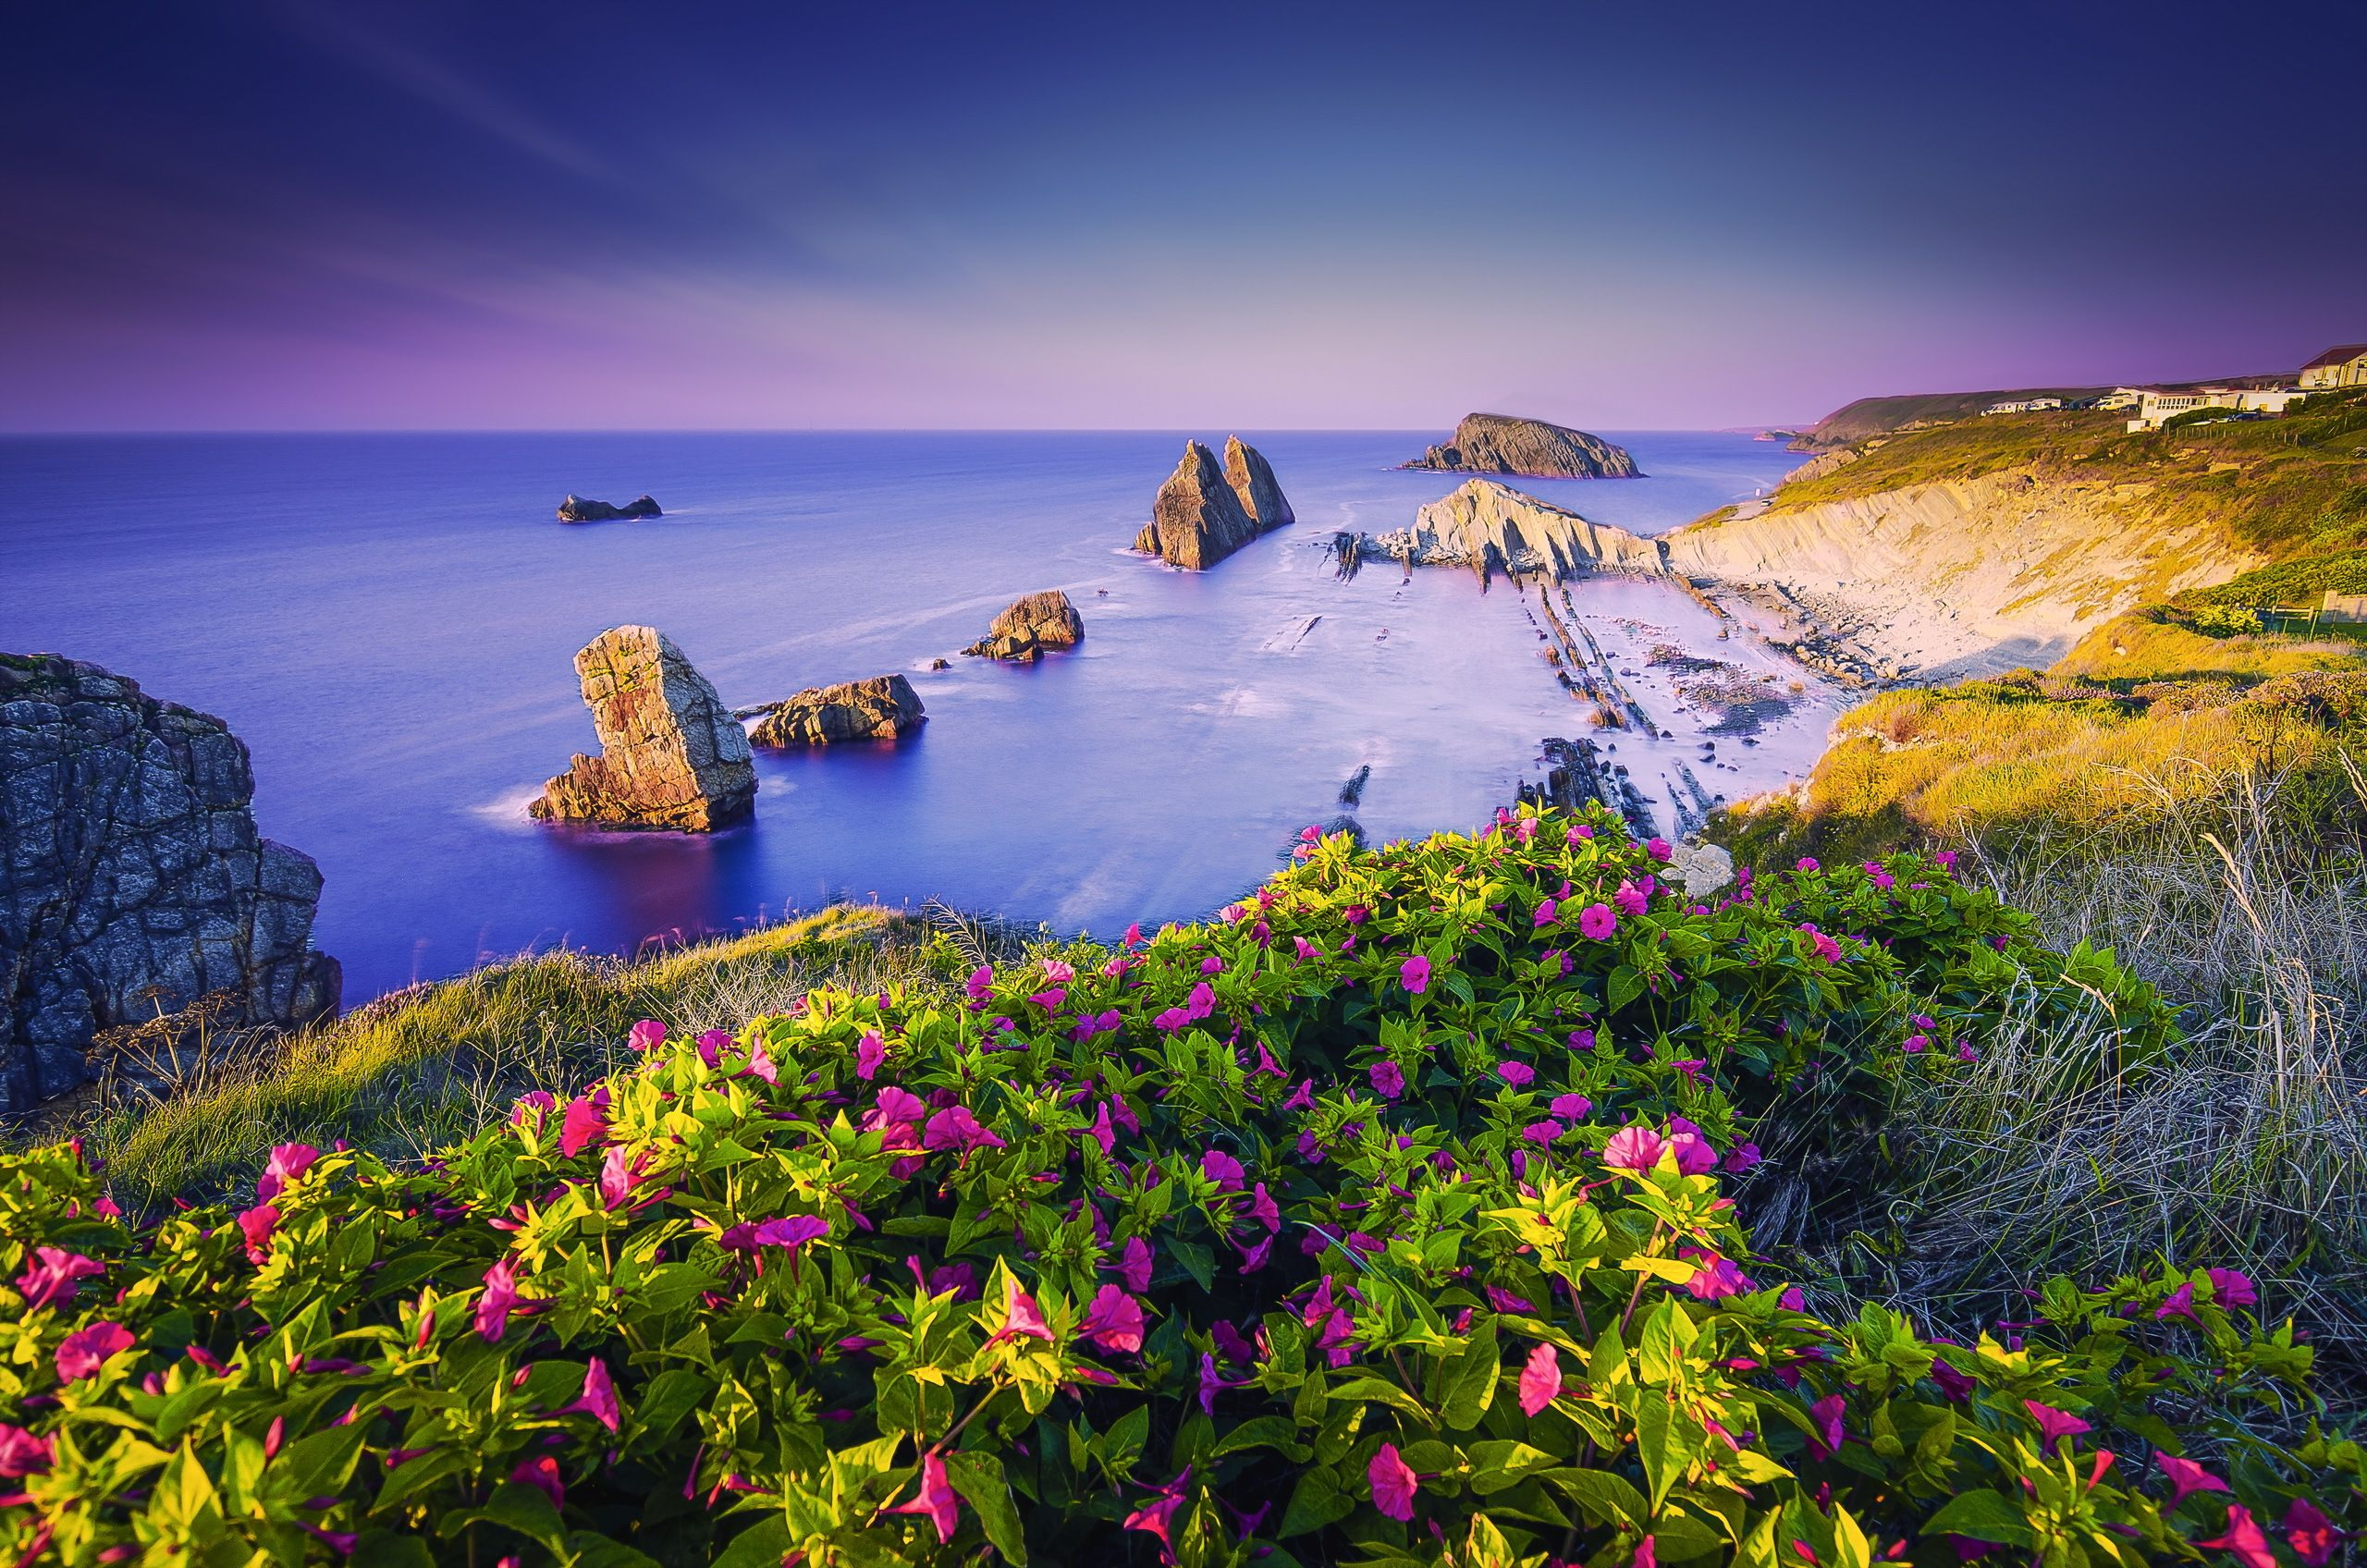 Coastline Wallpapers Phone Summer Beach Wallpaper Beach Photos Photo Wallpaper